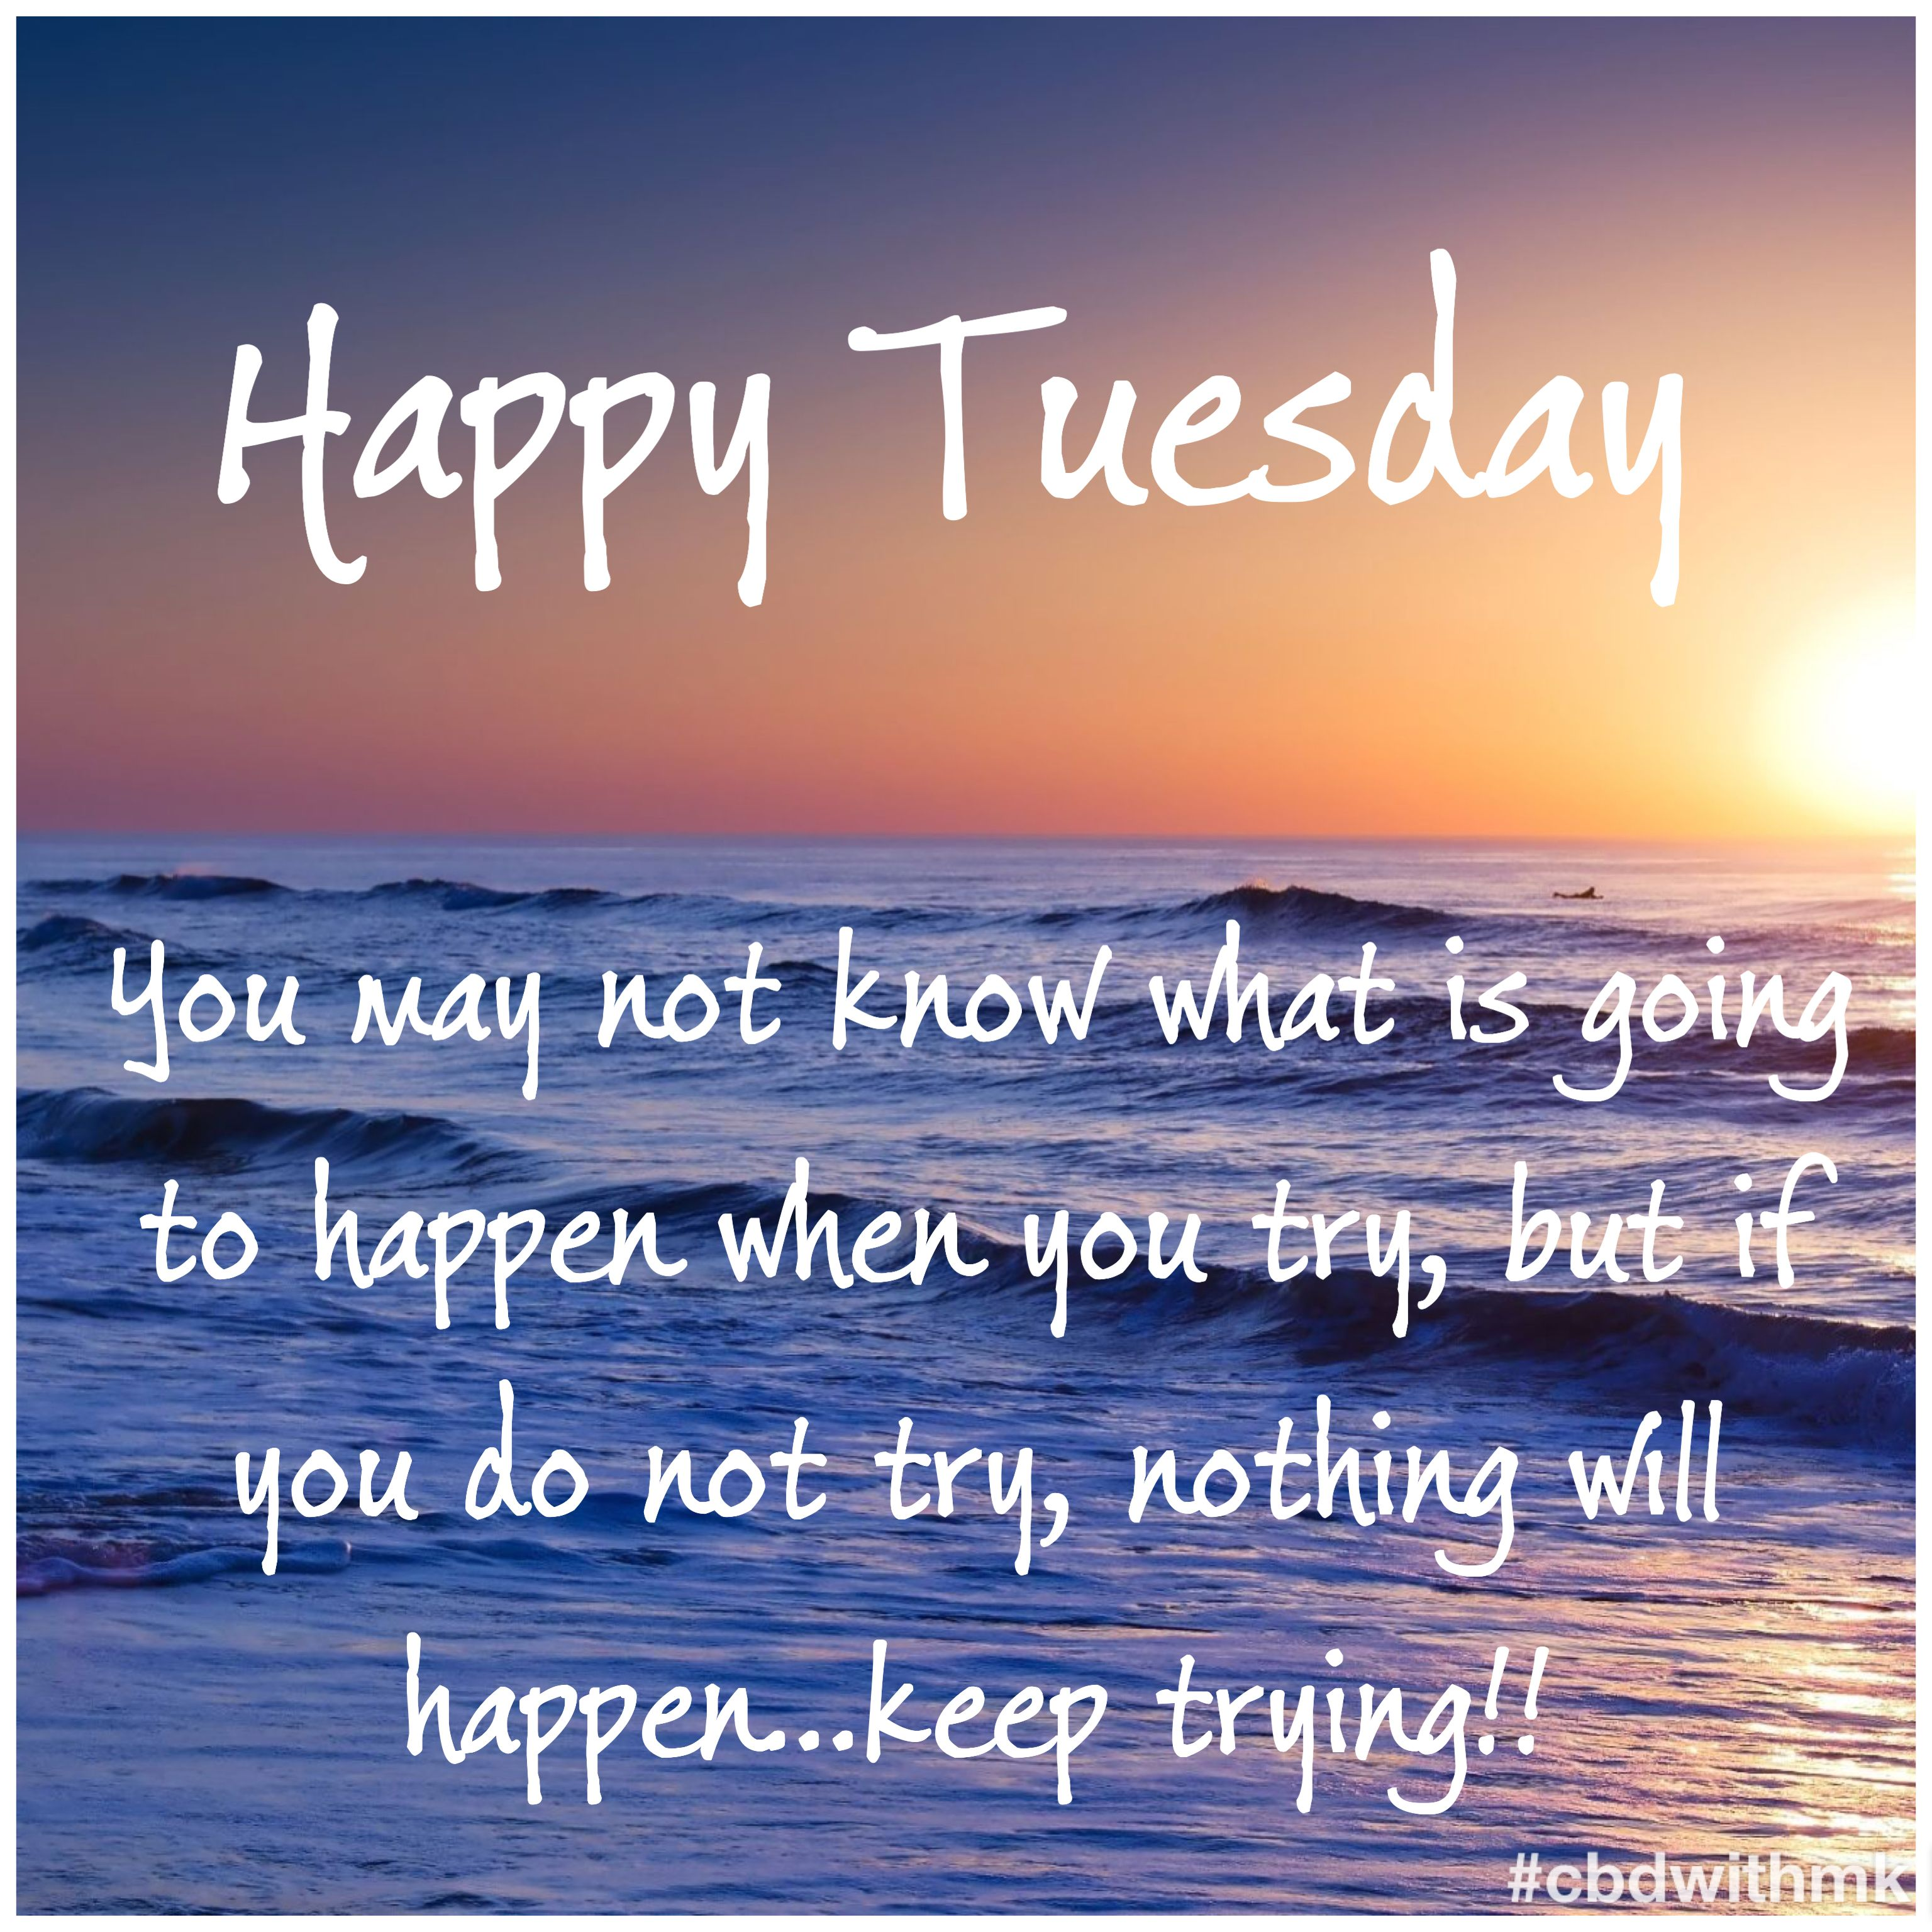 Happy Tuesday Tuesday Motivation Tuesday Motivation Quotes Tuesday Motivation Tuesday Quotes